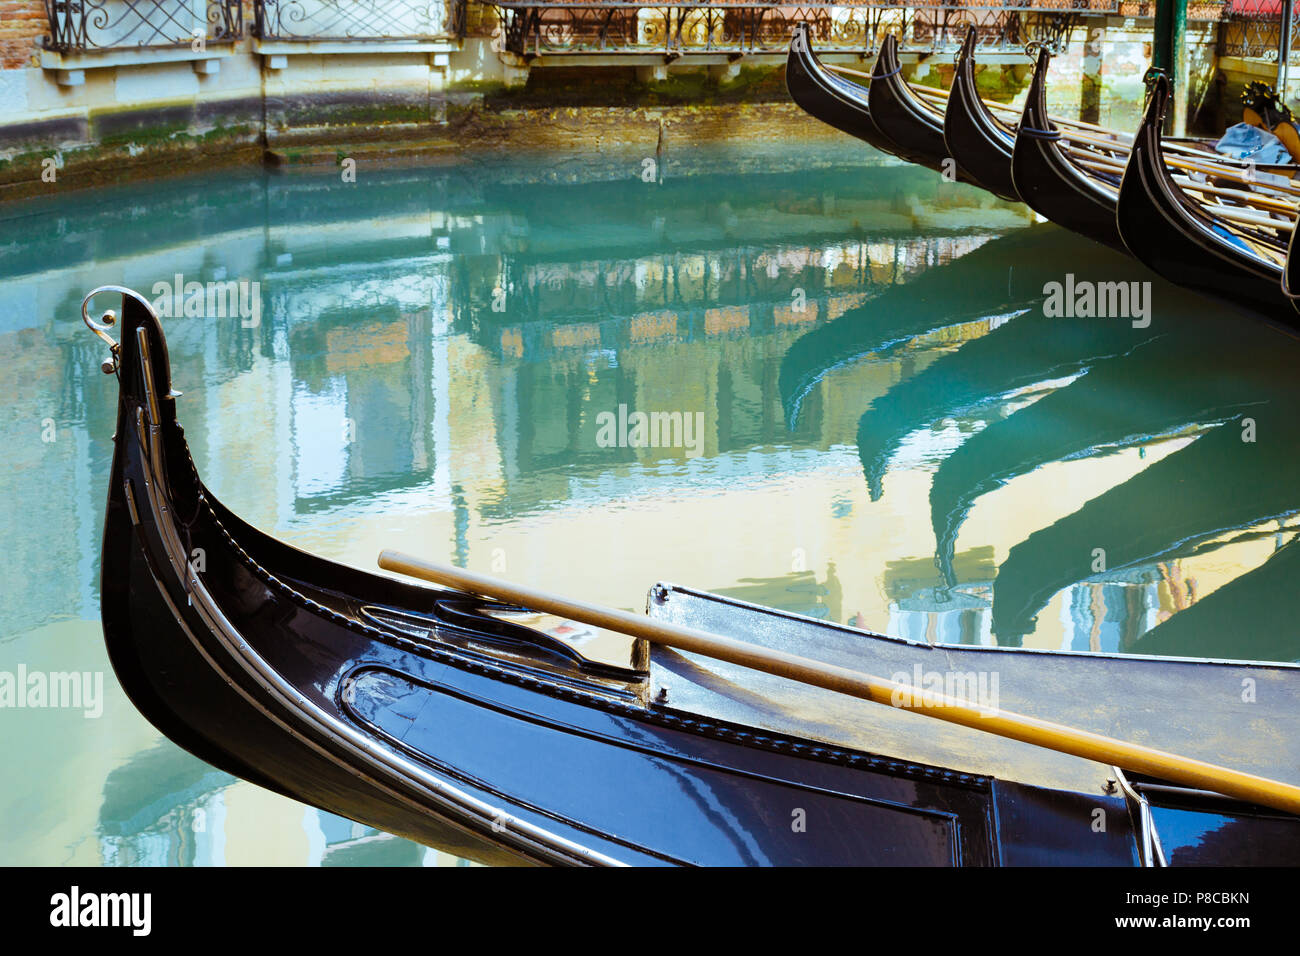 Gondols in still water with colorful reflection, Venice Italy - Stock Image